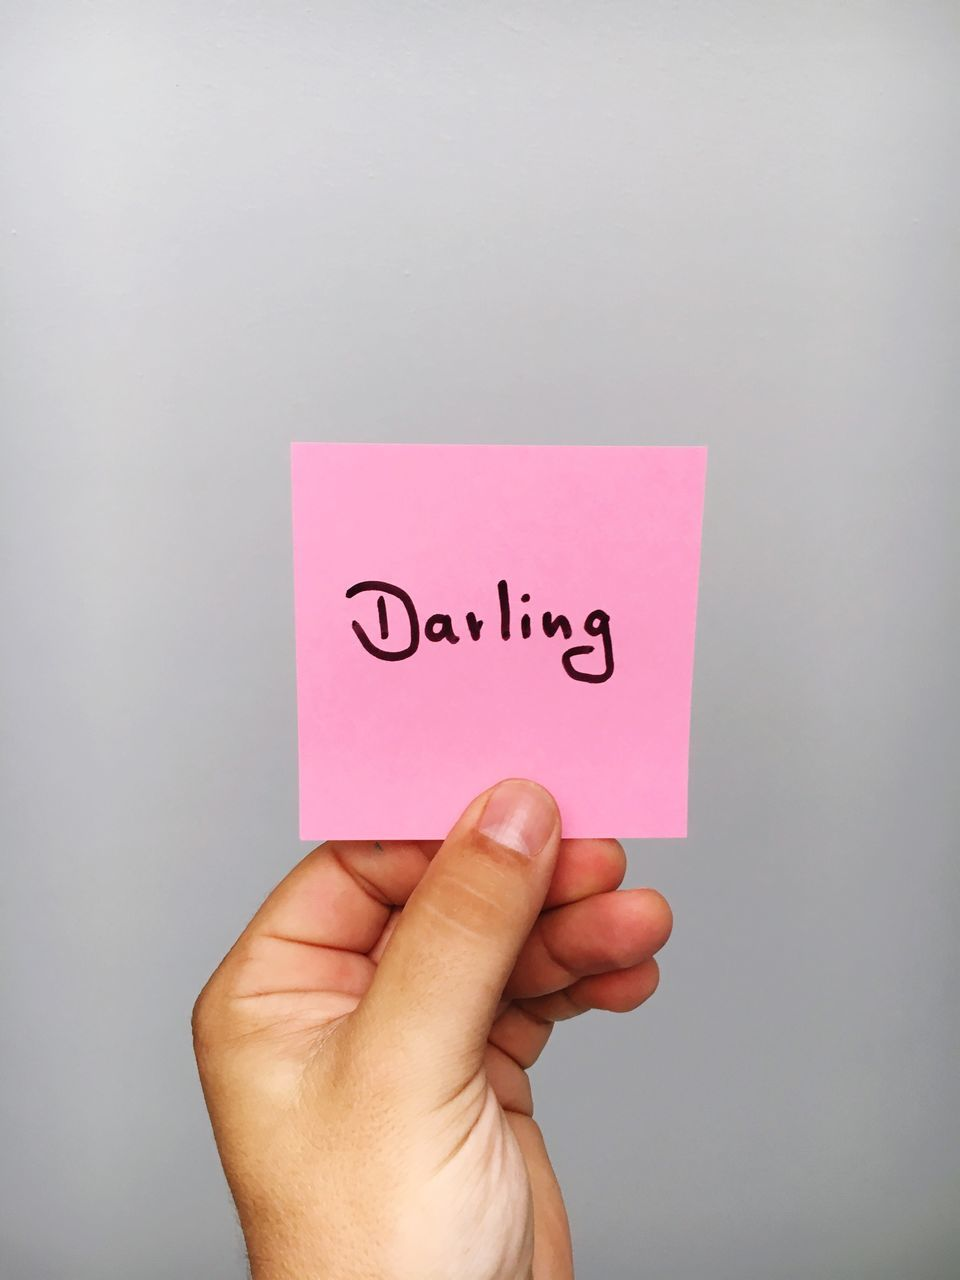 Cropped Hand Of Person Holding Adhesive Note With Darling Text Against Gray Background